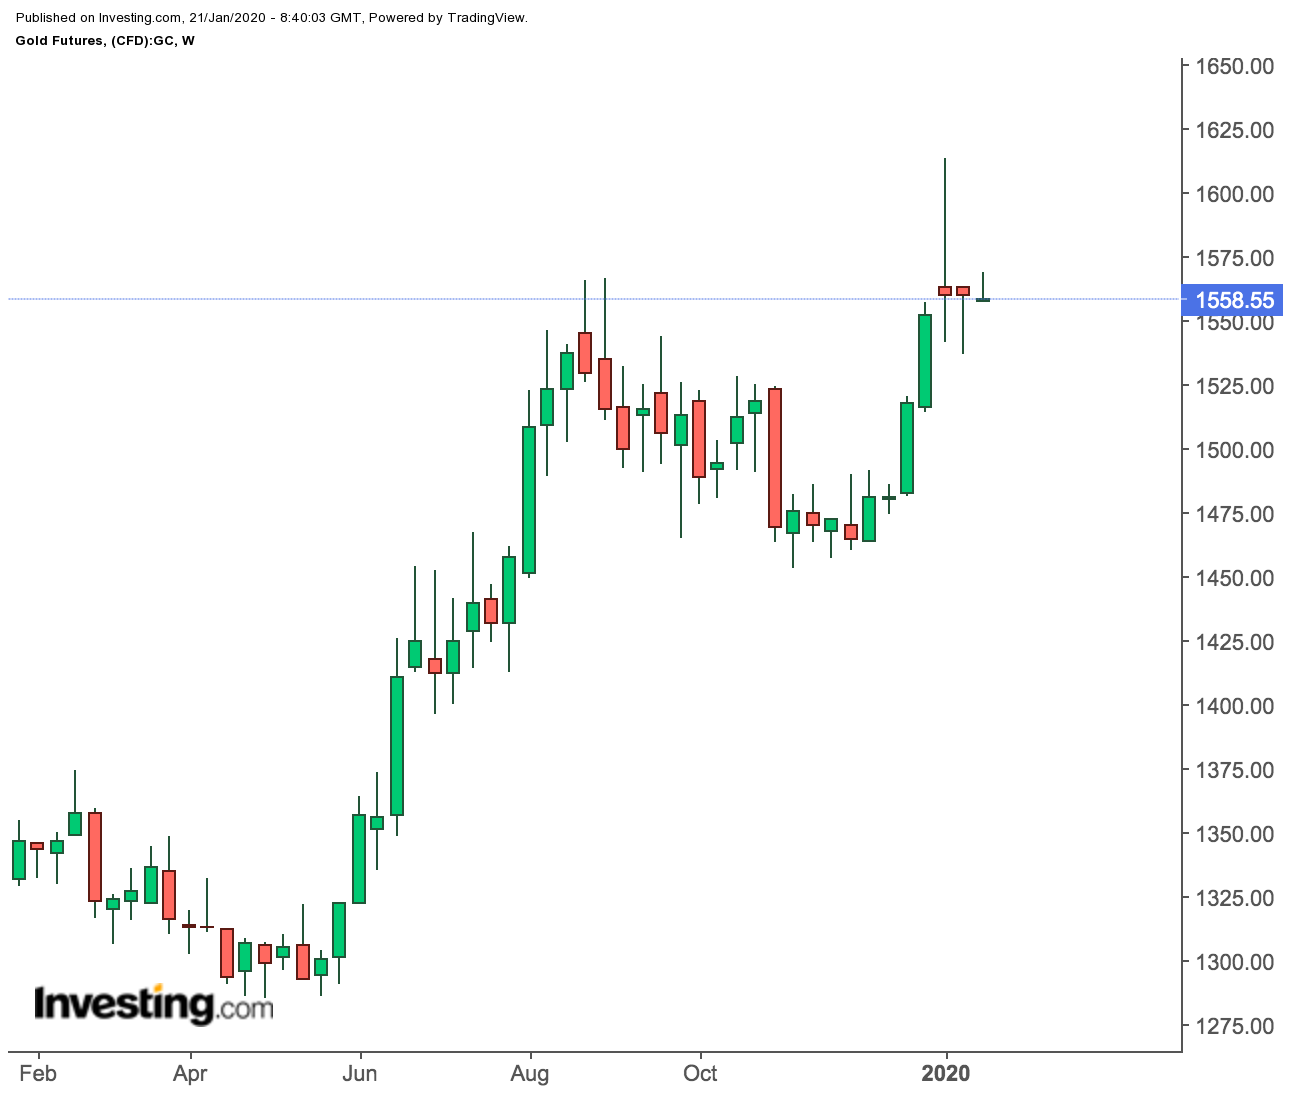 Gold Futures Weekly Prices